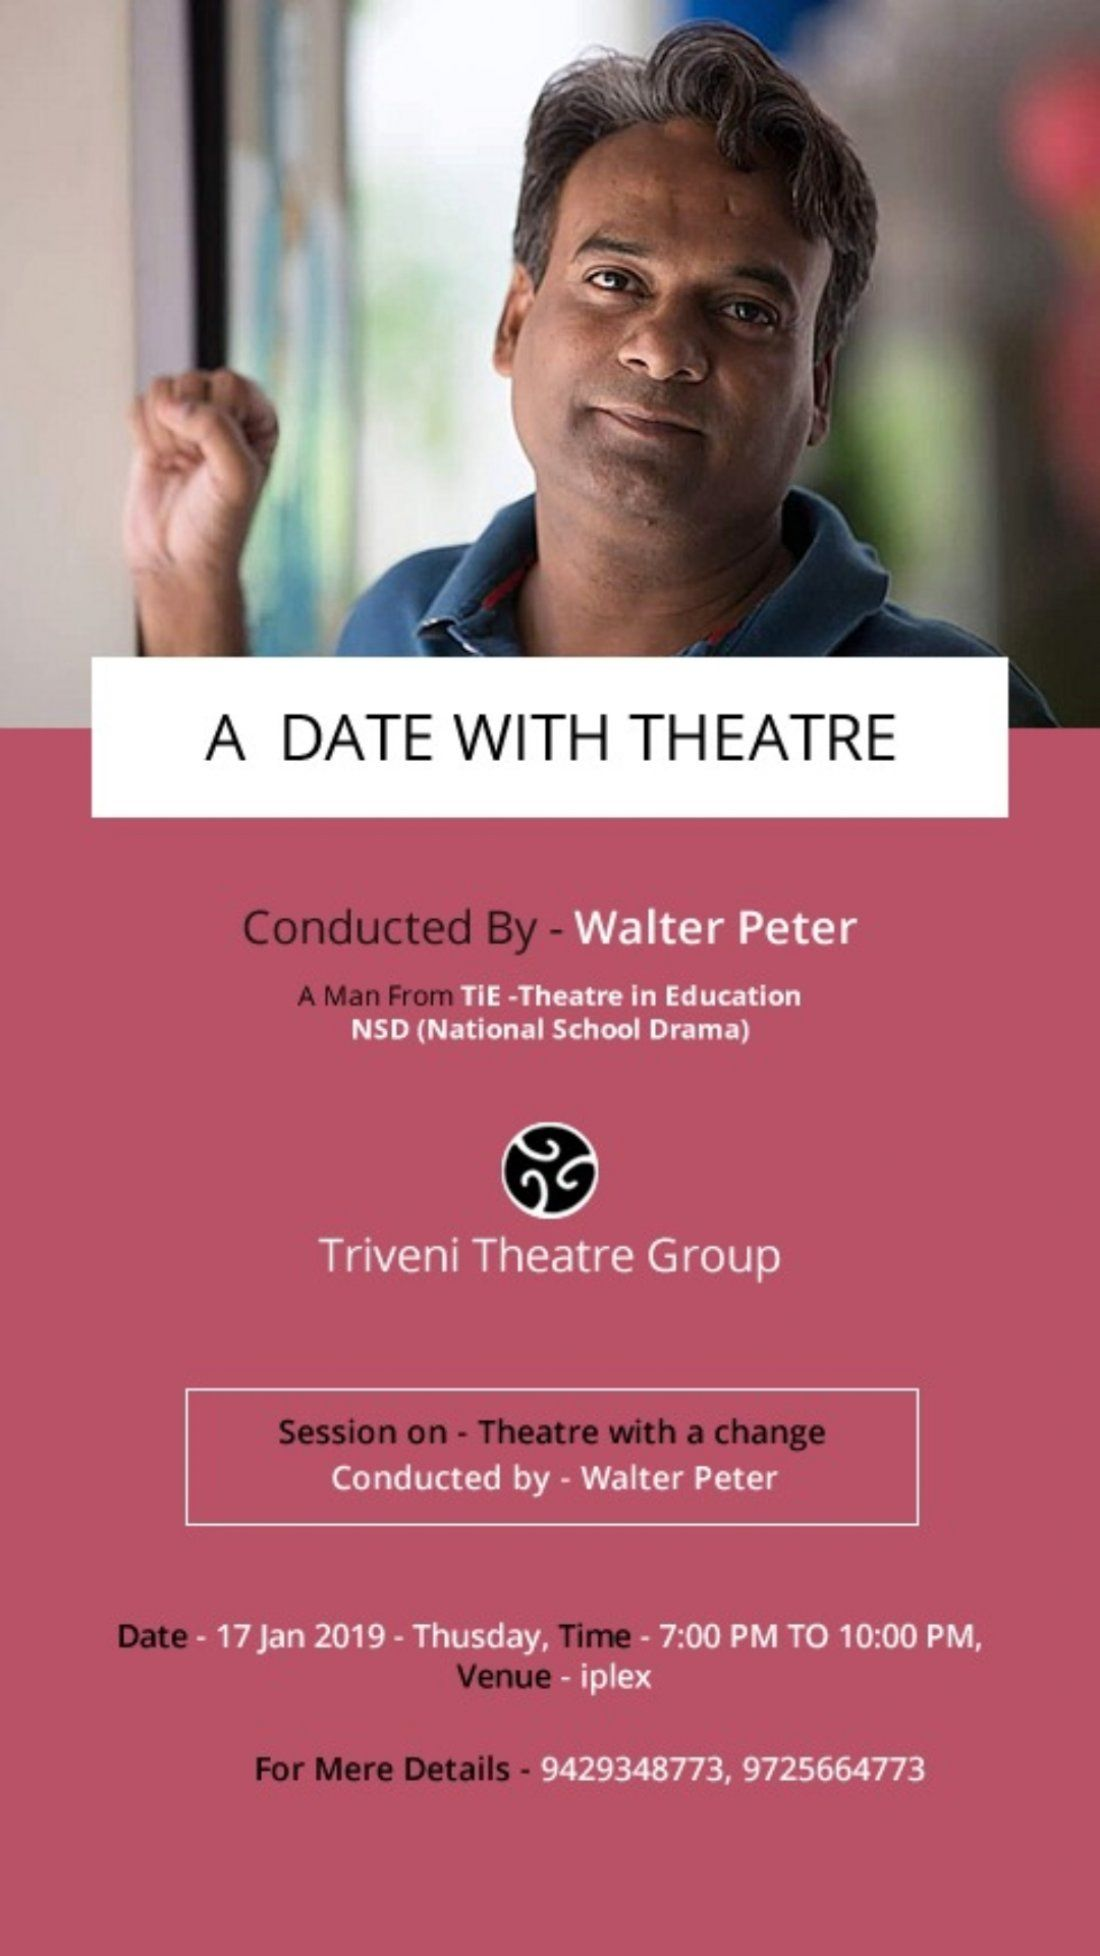 A Date With Theatre